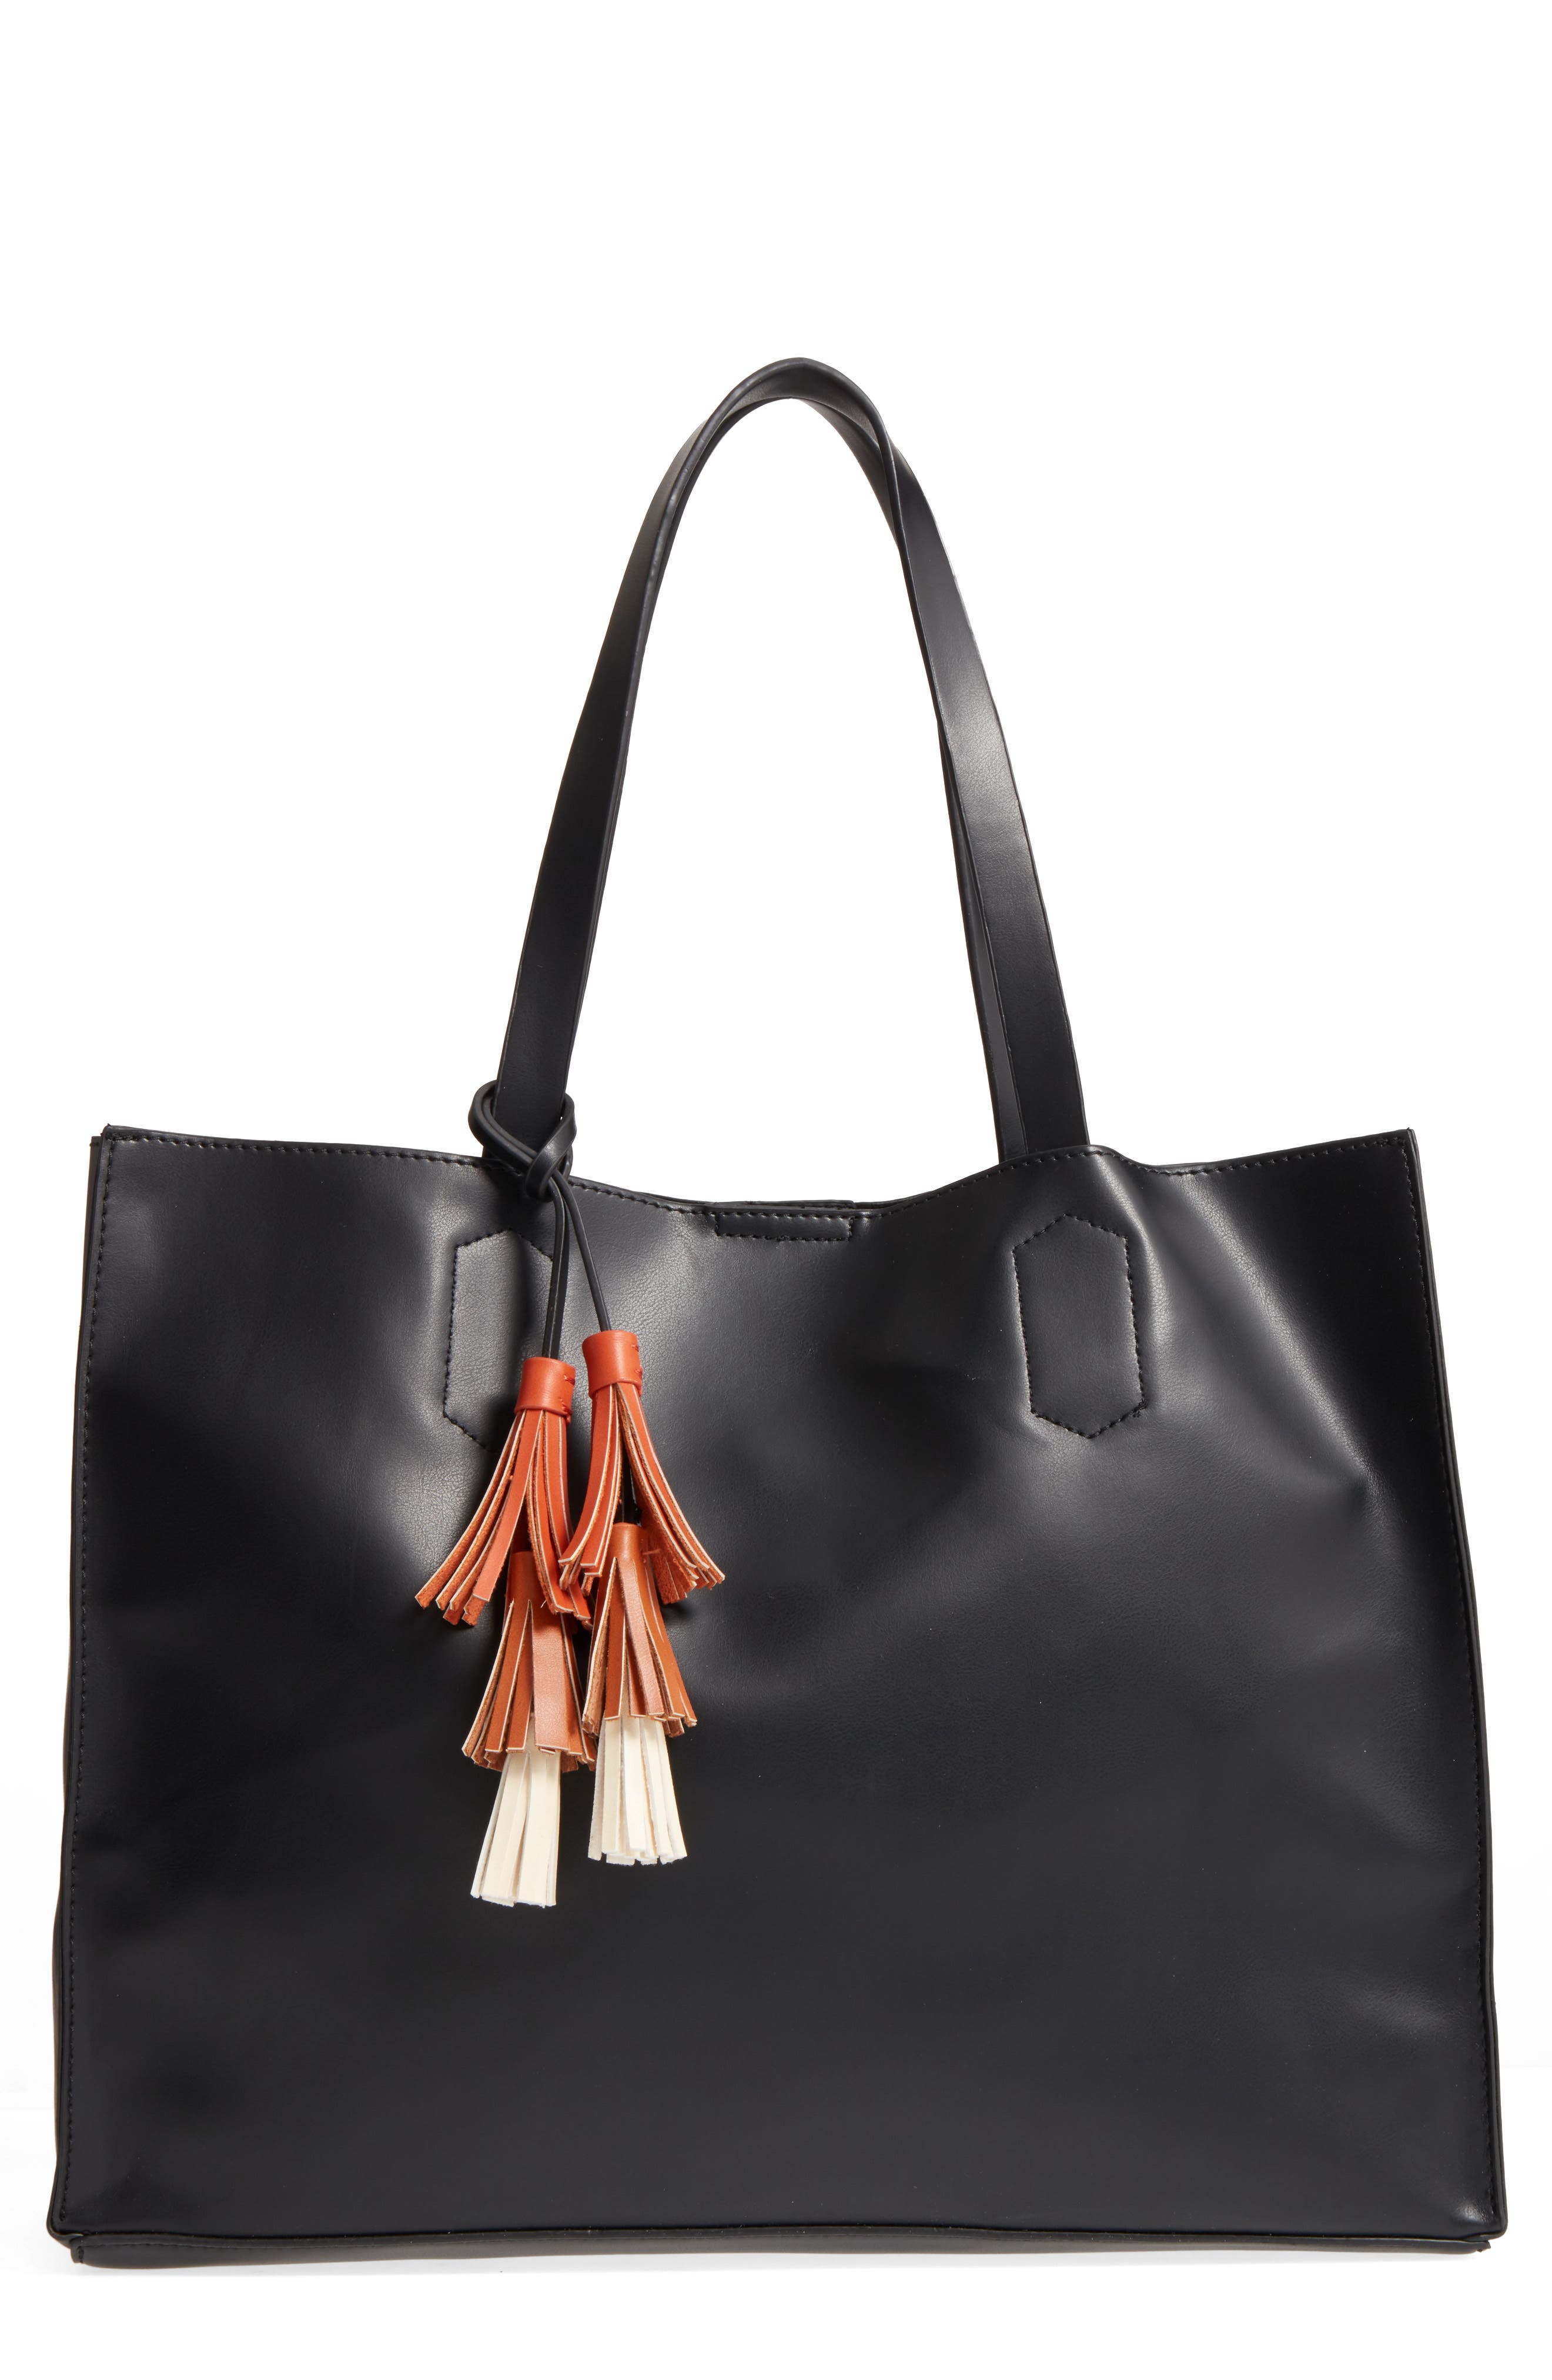 Alternate Image 1 Selected - Emperia Tassel Faux Leather Tote